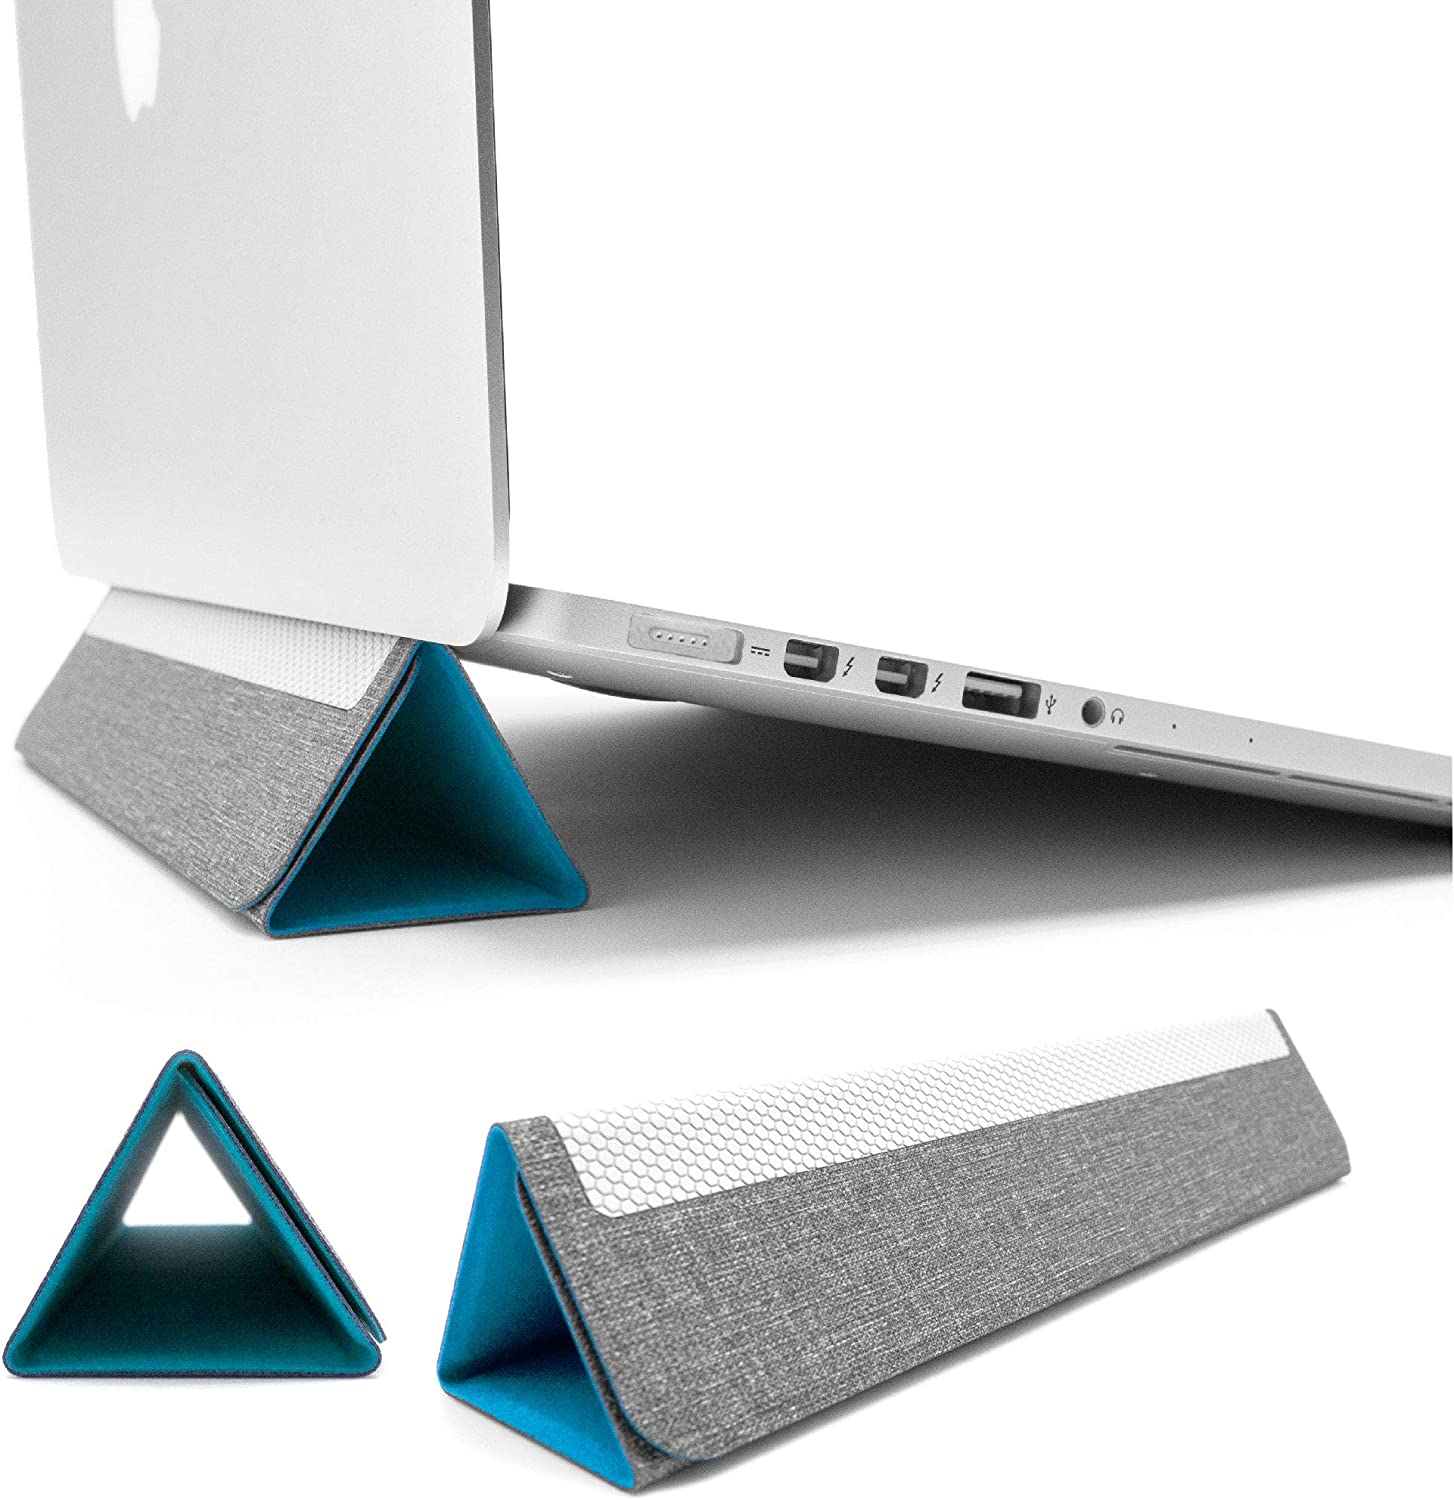 """SenseAGE Pyramid Foldable Laptop Stand, Lightweight Laptop Stand, Anti-Slide and Portable Notebook Stand, Compatible with MacBook/MacBook Air/MacBook Pro, Tablets and Laptops up to 15"""", Sky Blue"""